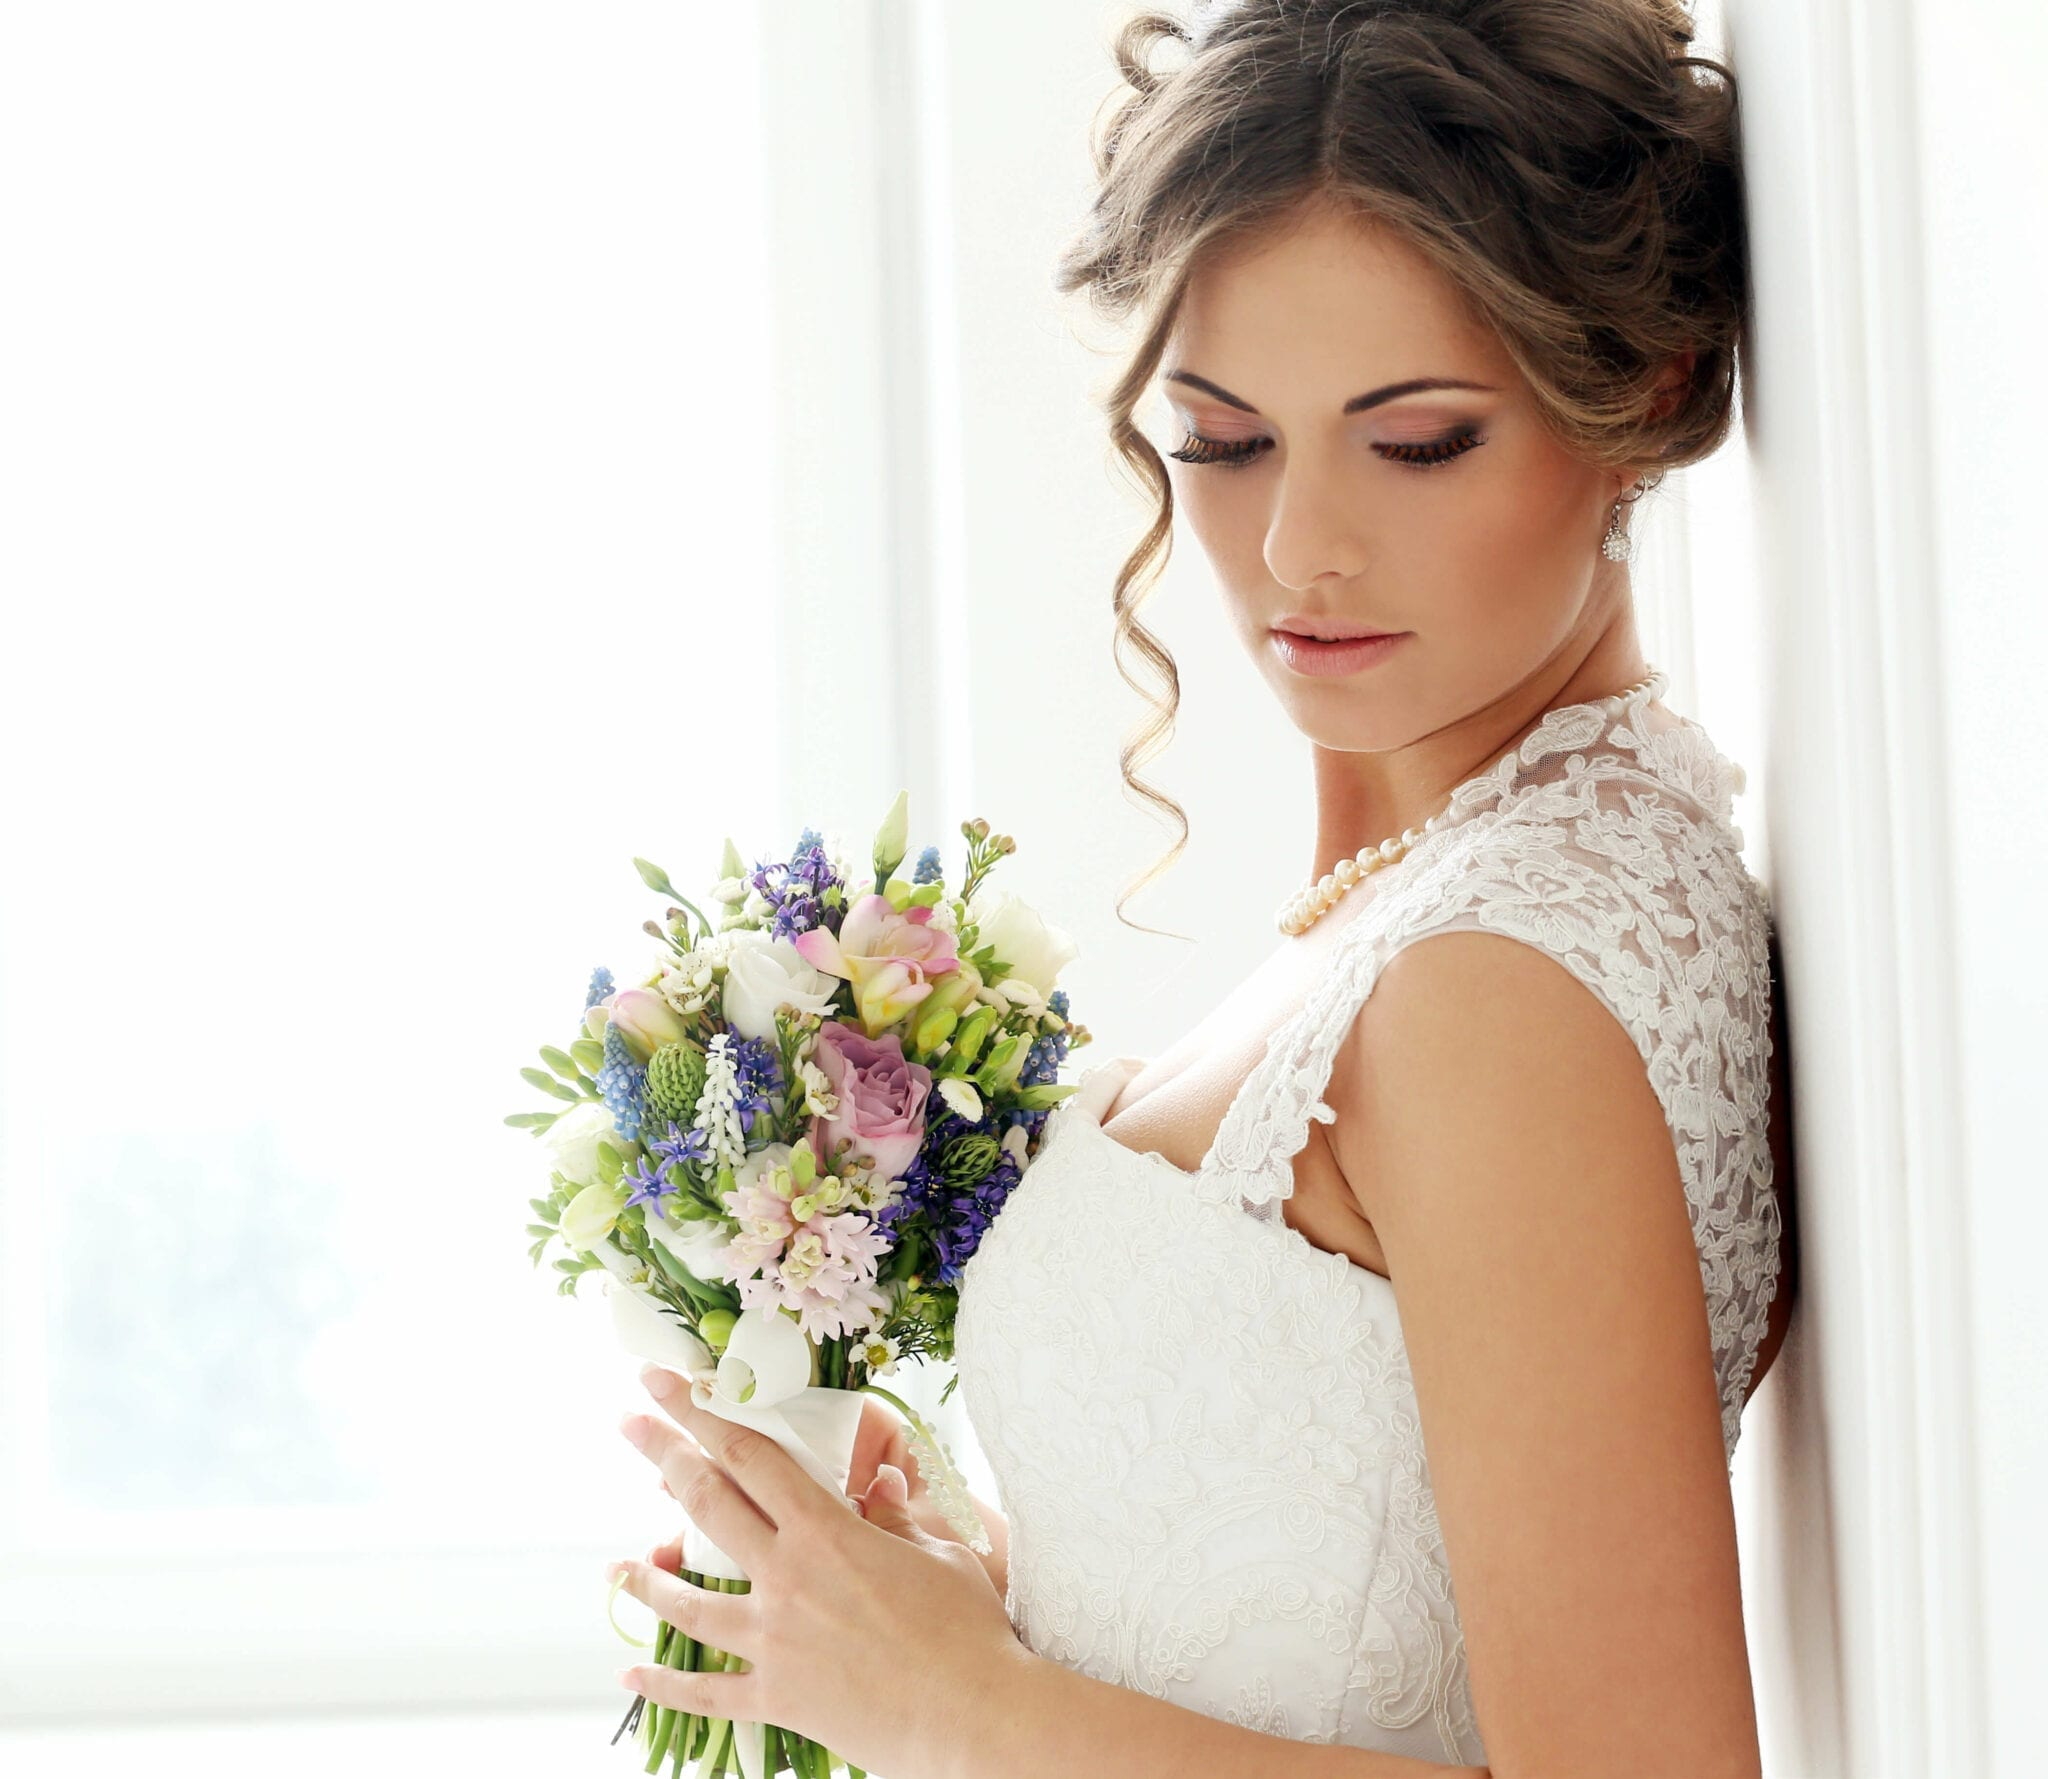 Home bliss hair studio blissful brides pmusecretfo Image collections